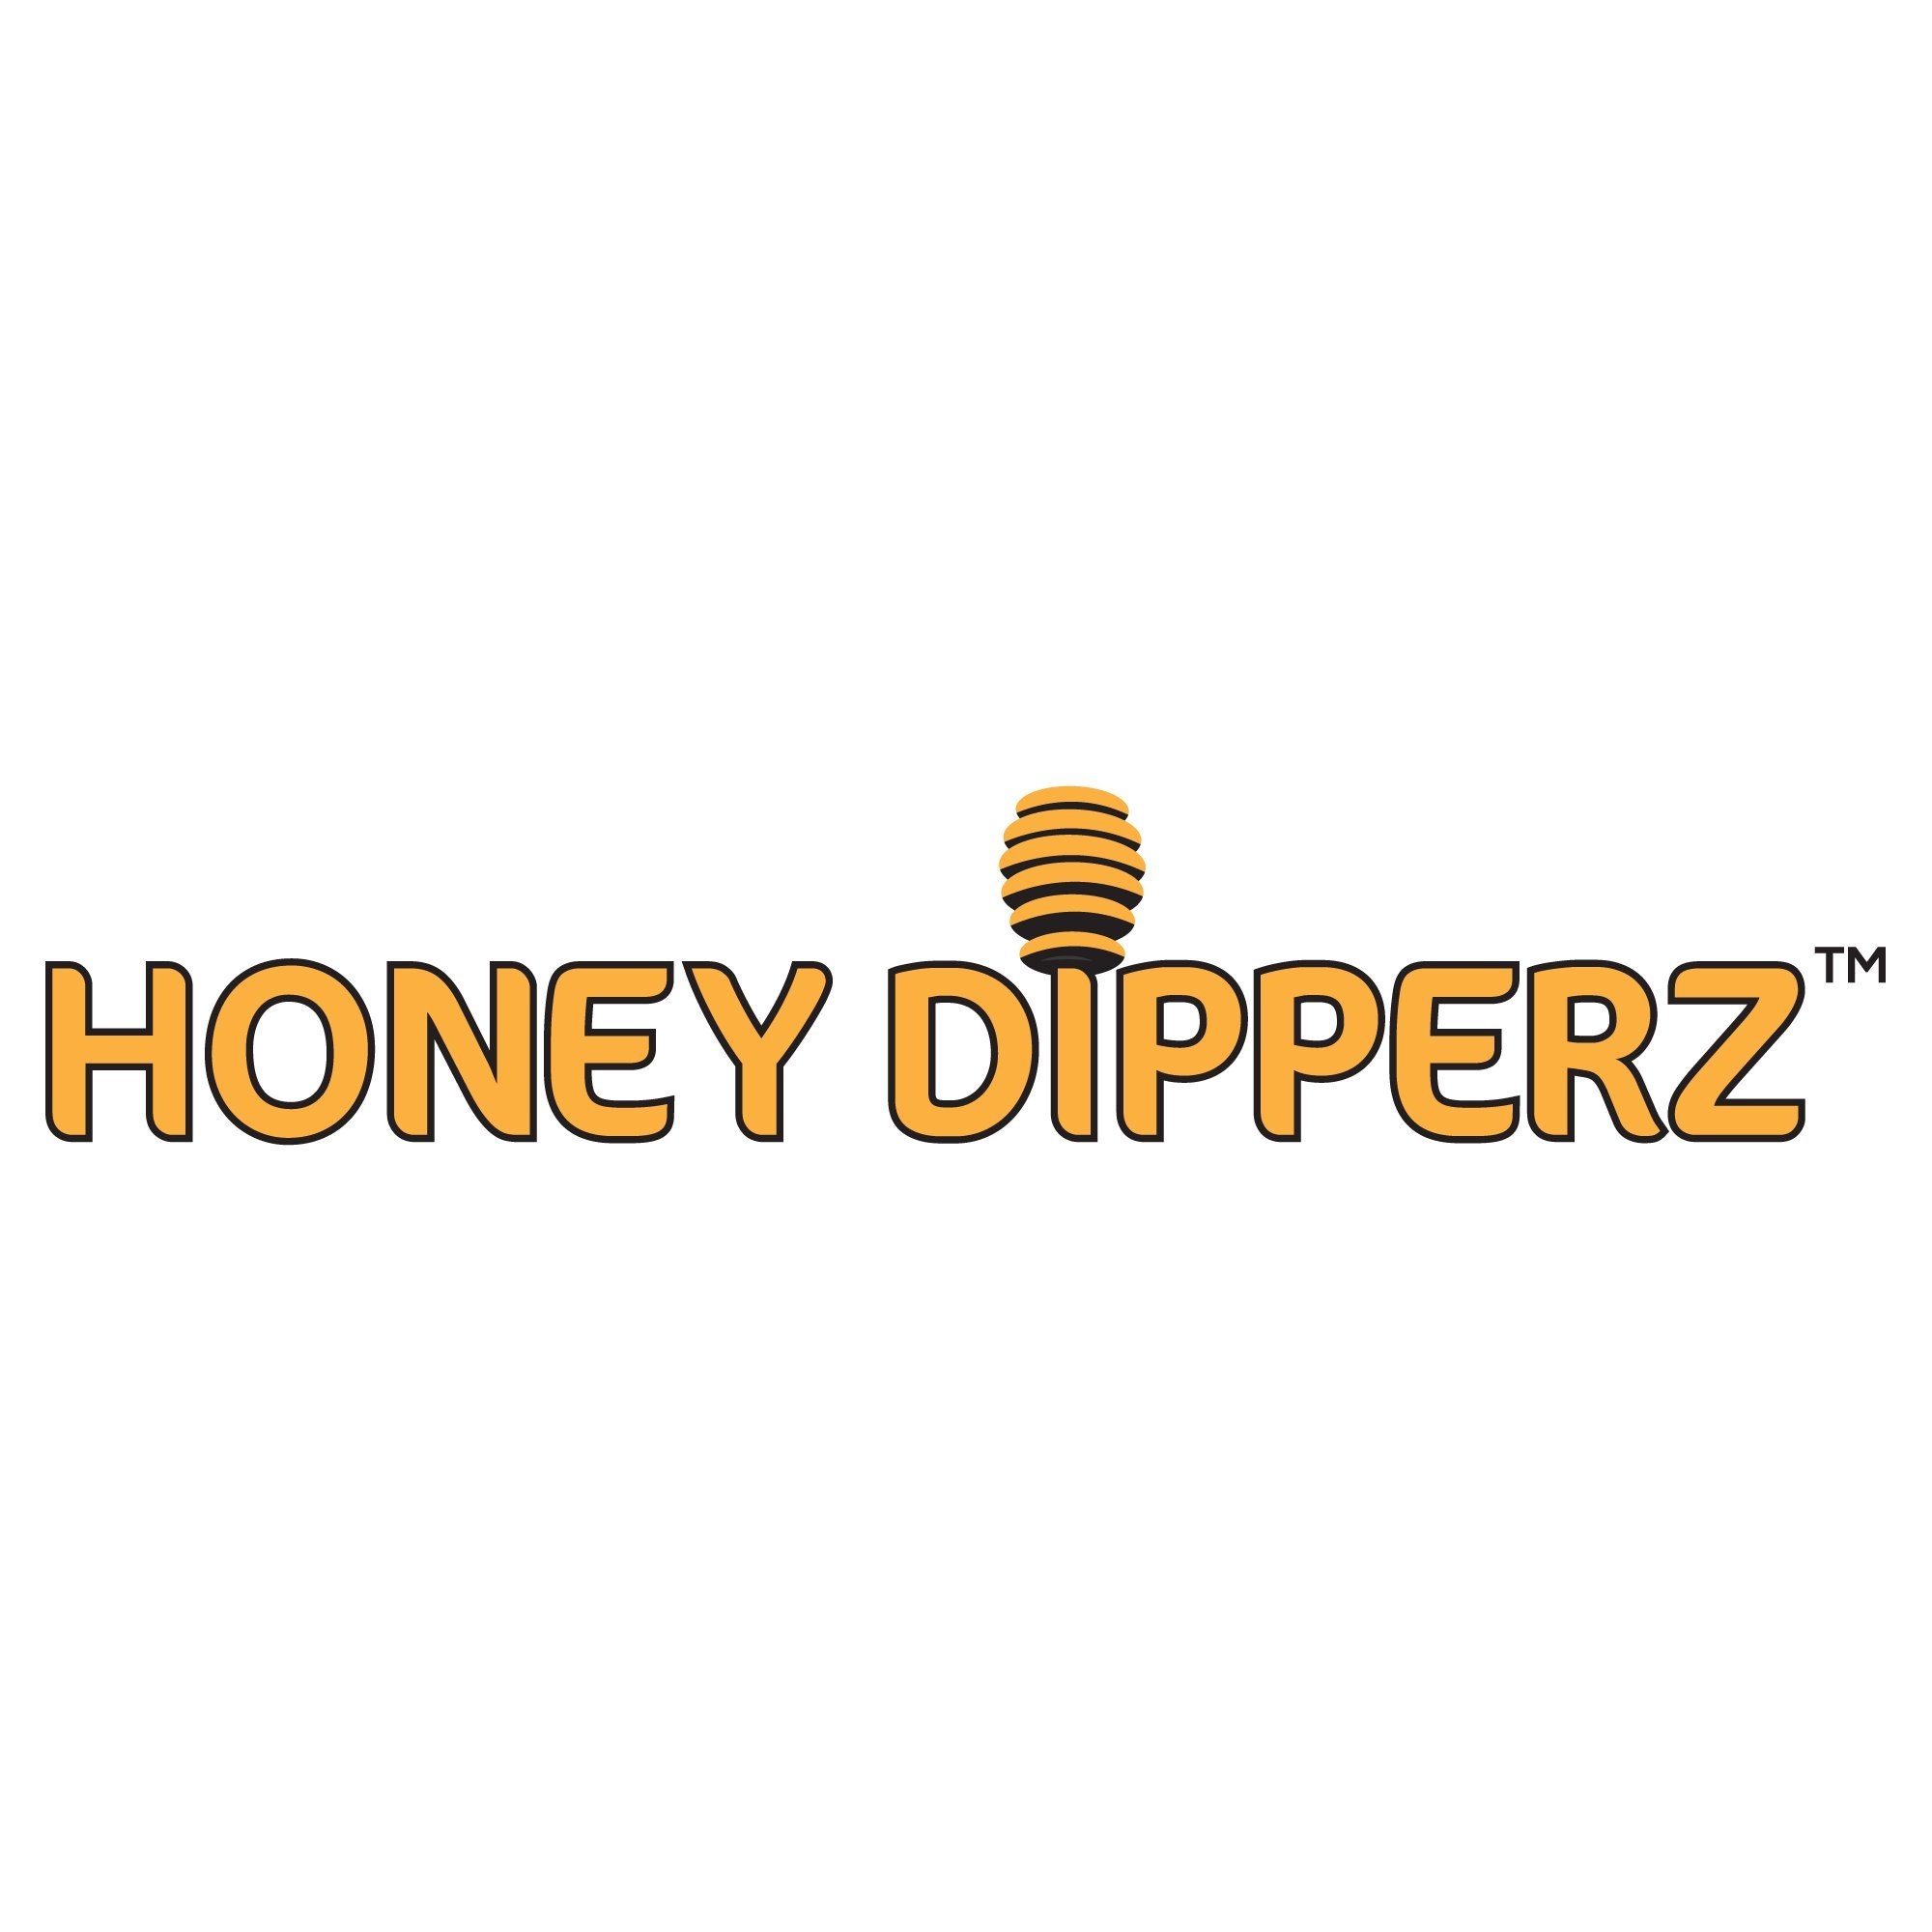 Honey Dipperz 24 PACK - 6'' Inches Long (16cm) Wooden Honey Dipper Drizzler Stirring Stick, Spoon Rod Muddler Dispense, Bulk Lot by HoneyDipperz